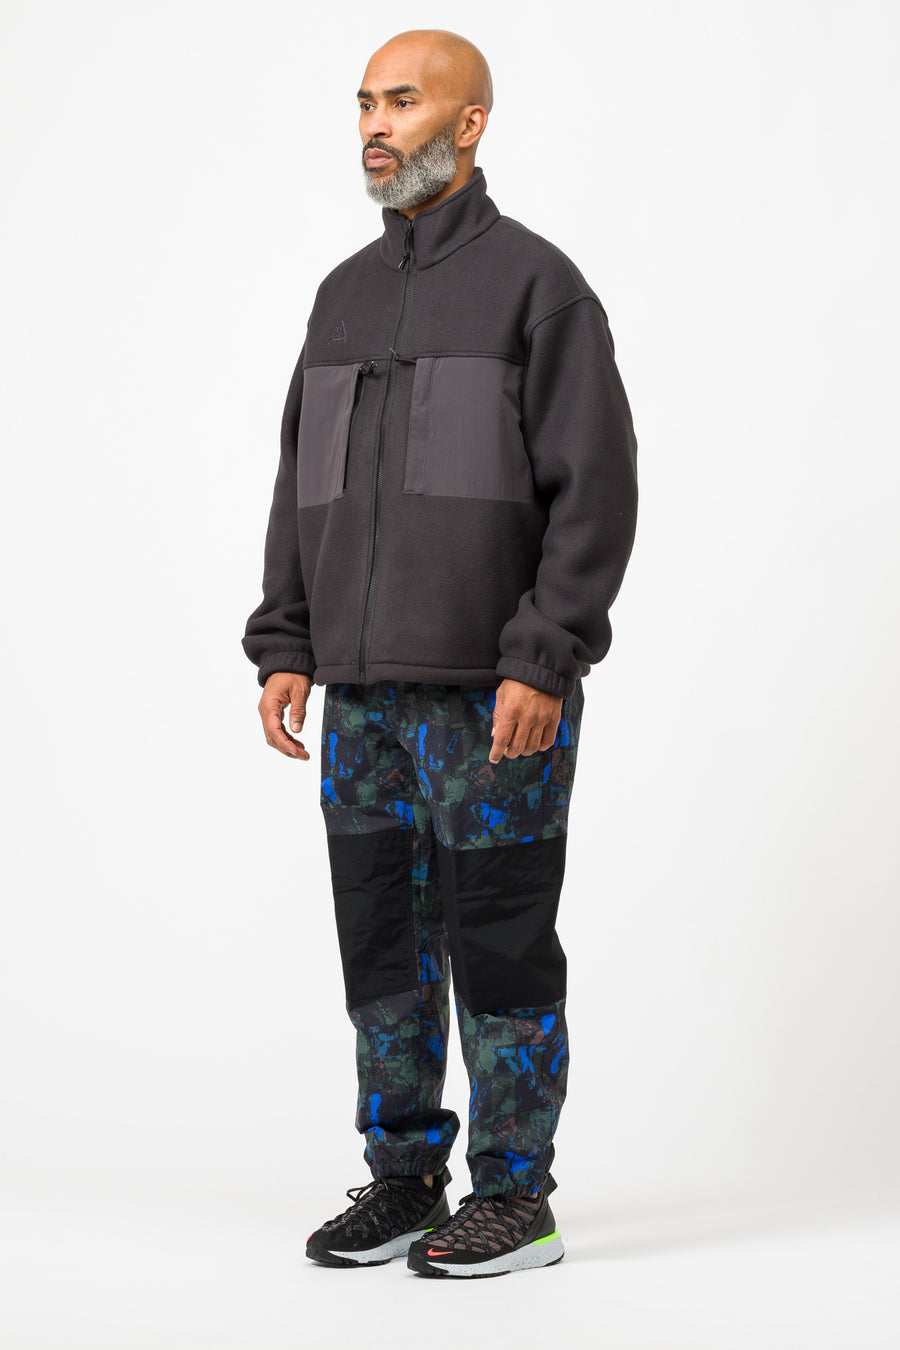 Nike ACG Fleece Jacket in Black/Anthracite - Notre